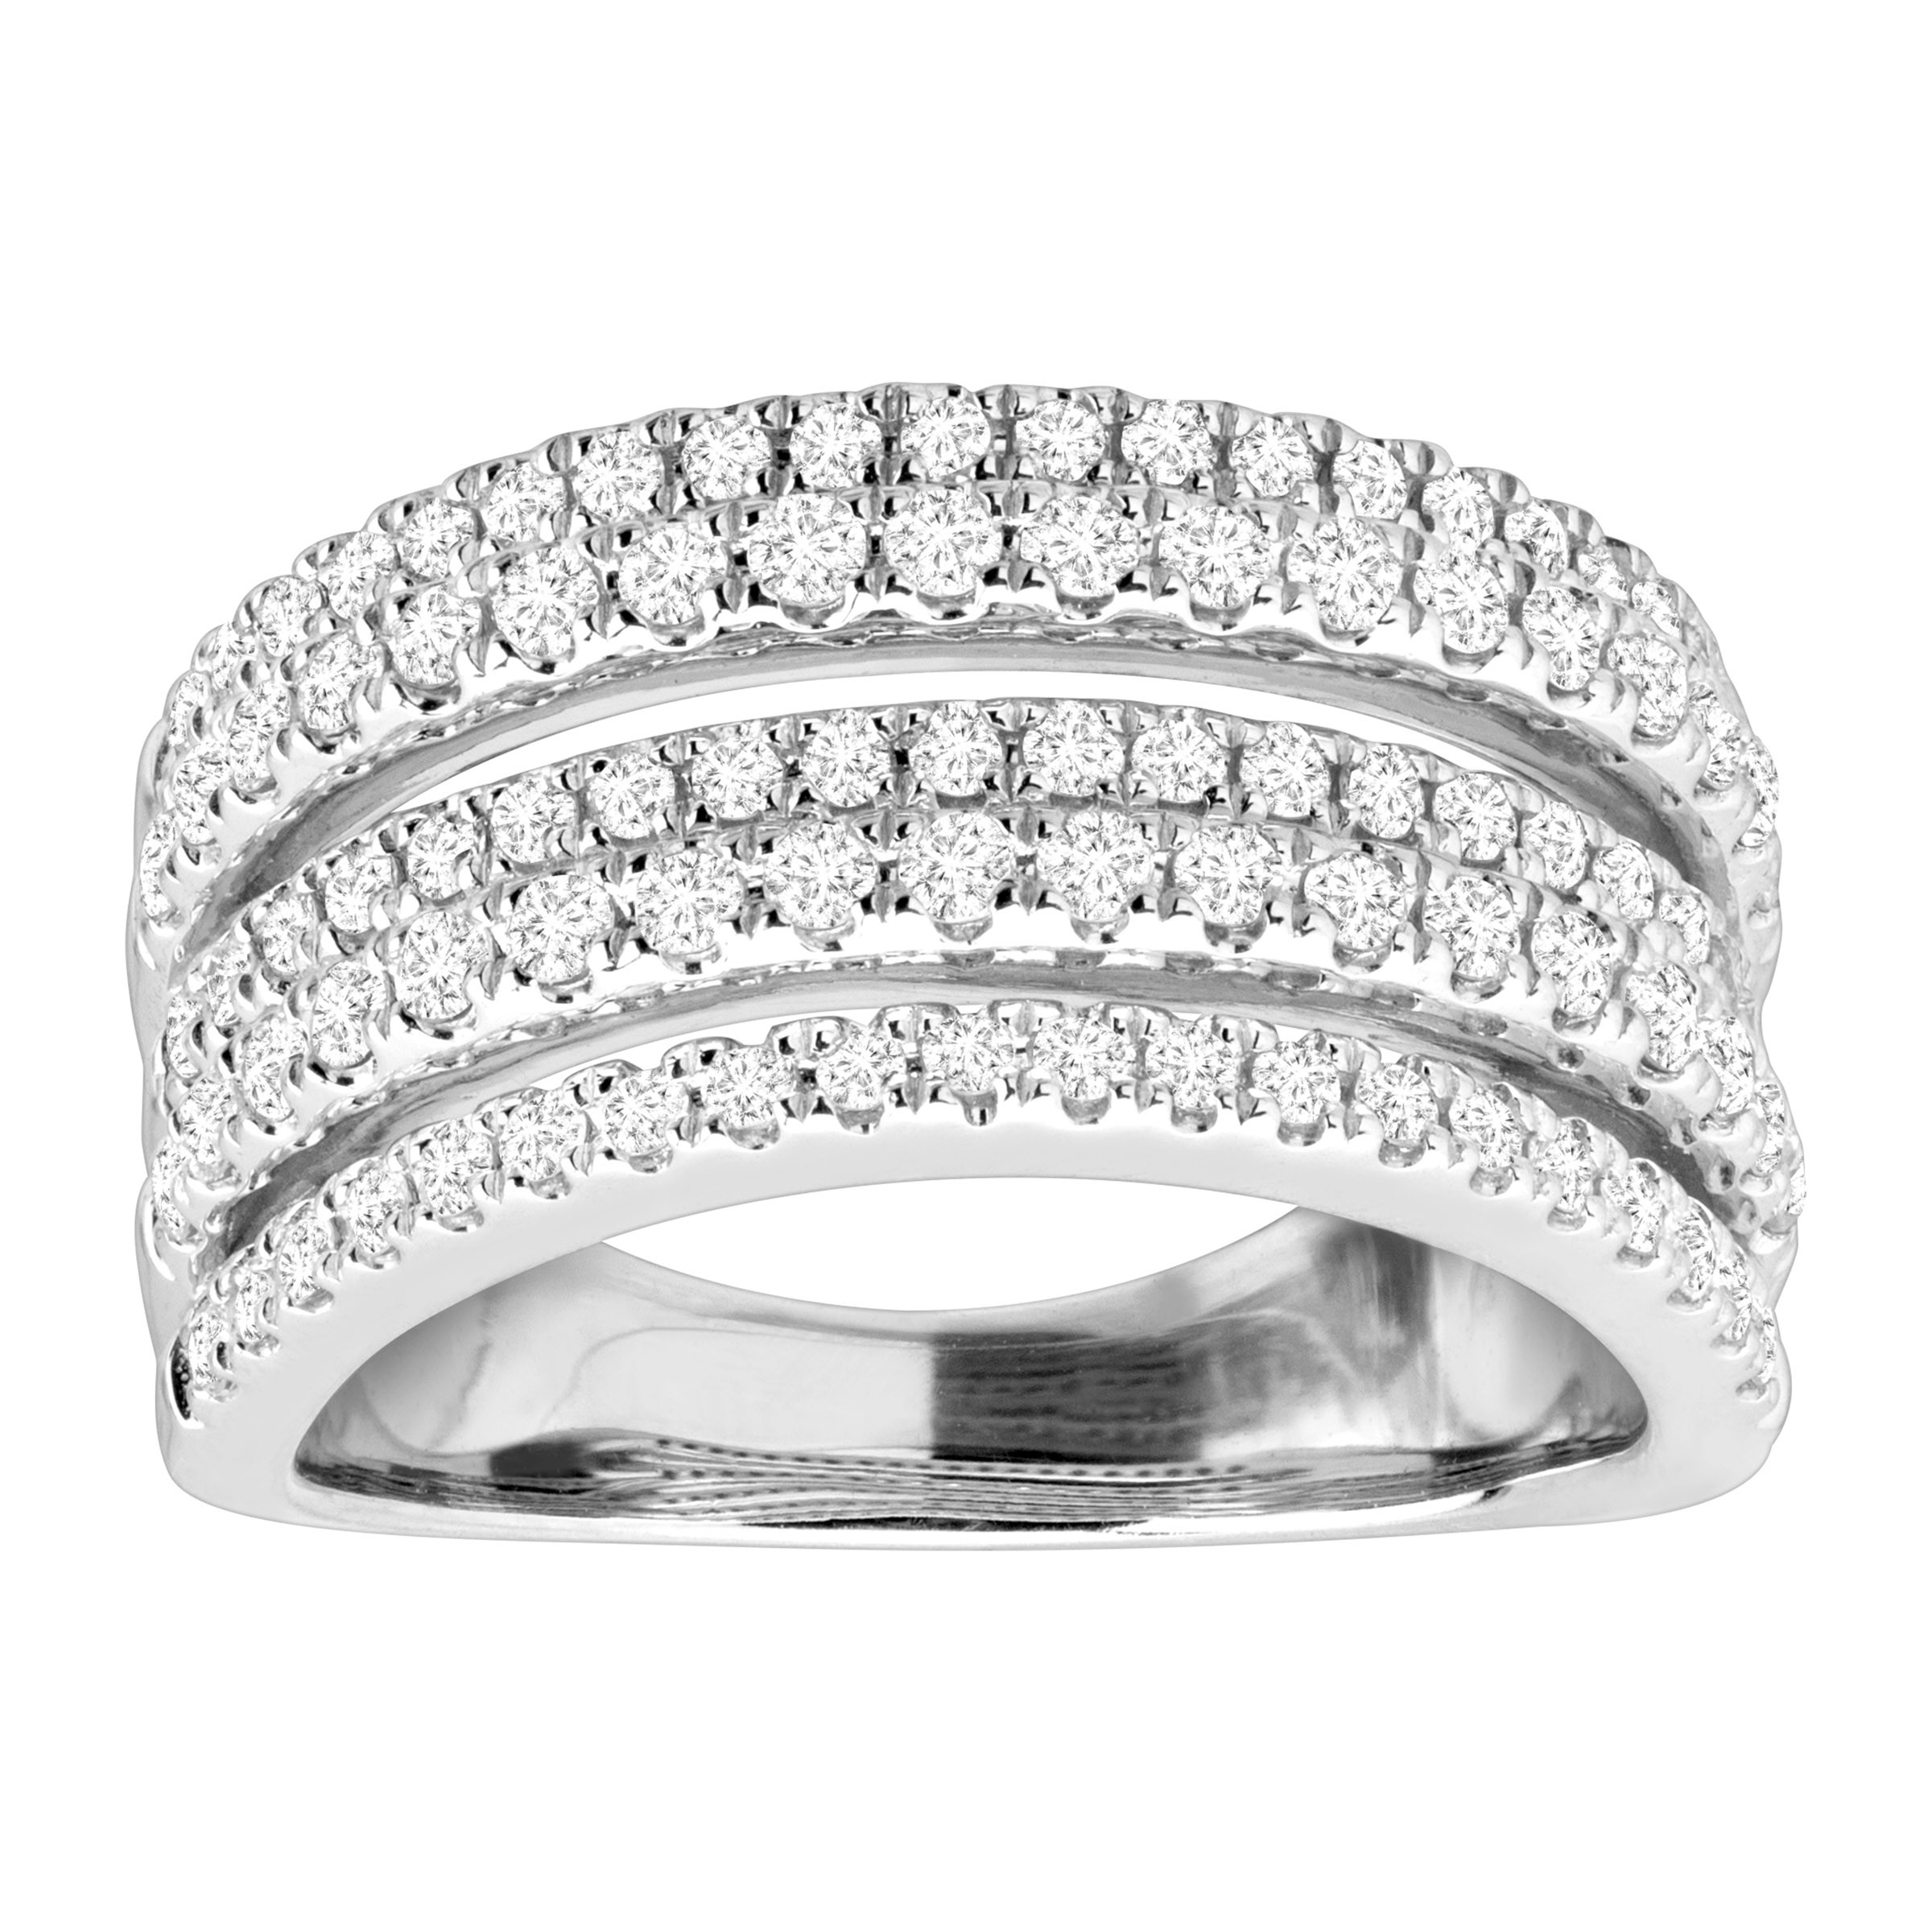 Details About Igi Certified 1 Ct Diamond Multi Band Anniversary Ring In 10K  White Gold Throughout Most Popular Certified Diamond Anniversary Bands In Gold (View 12 of 25)